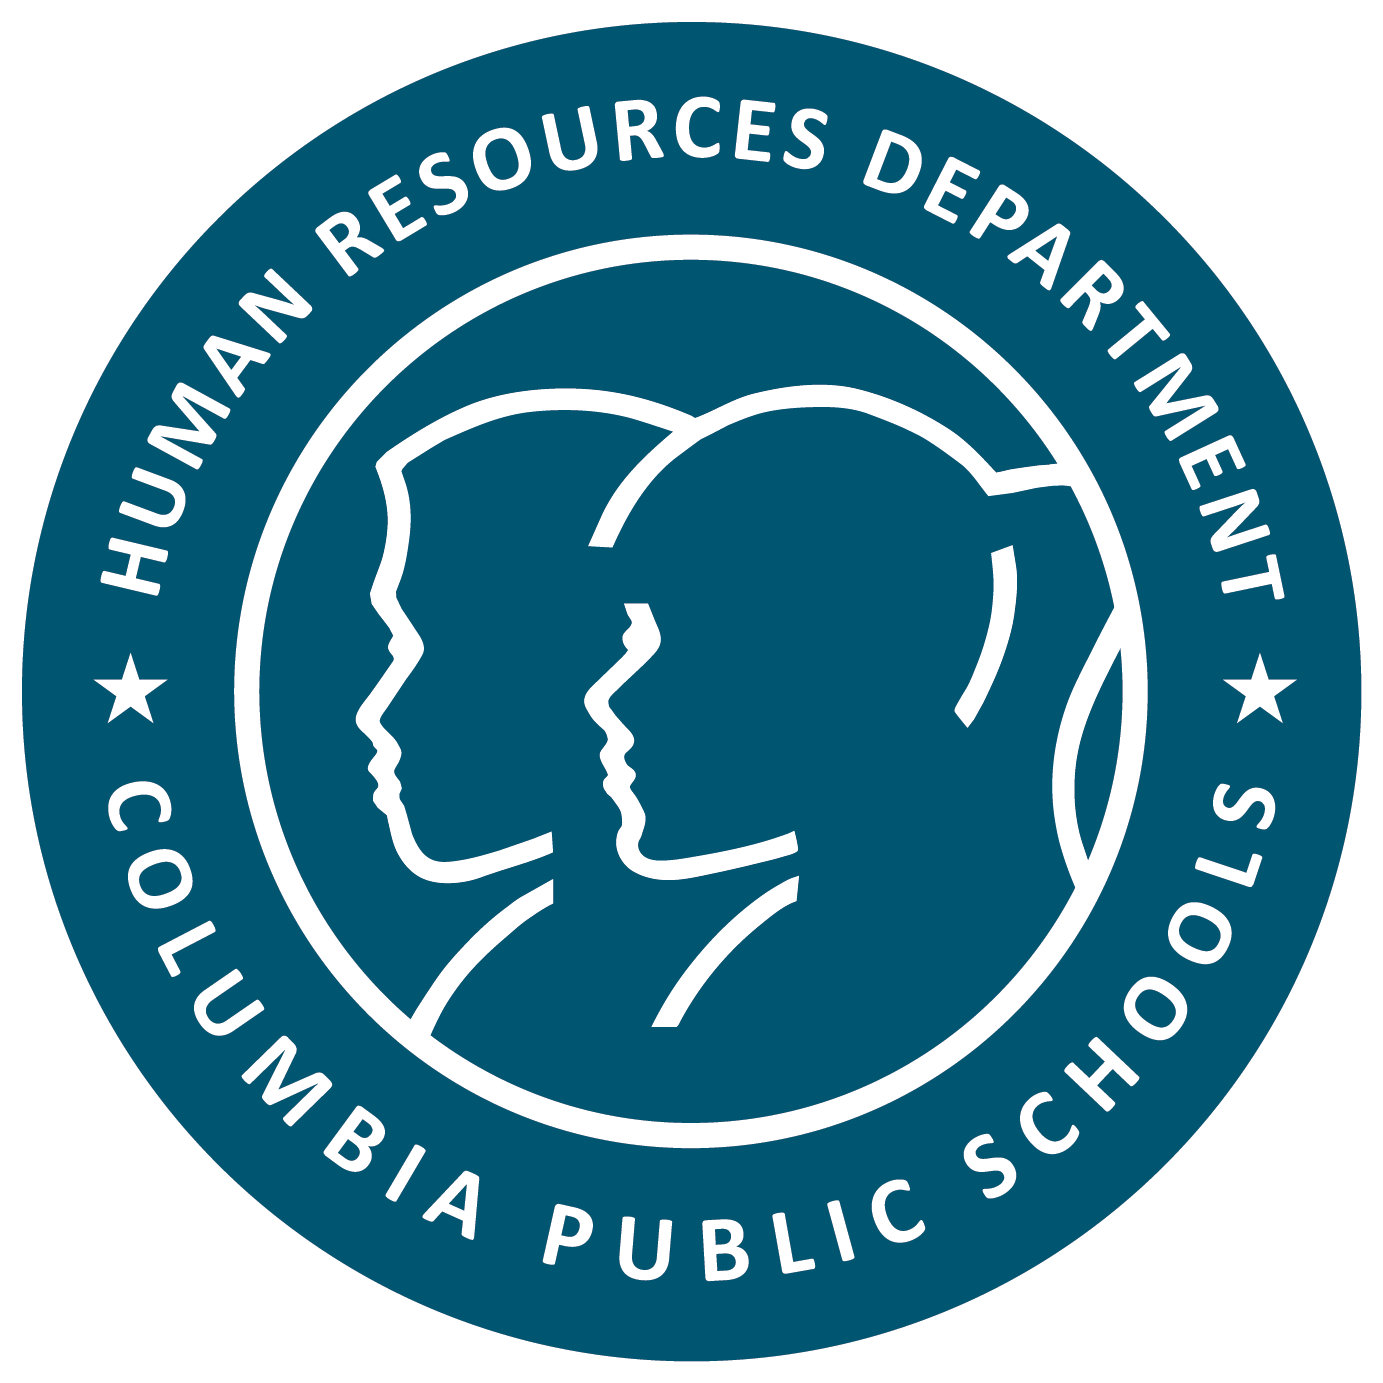 HumanResourcesDepartmentLogo""